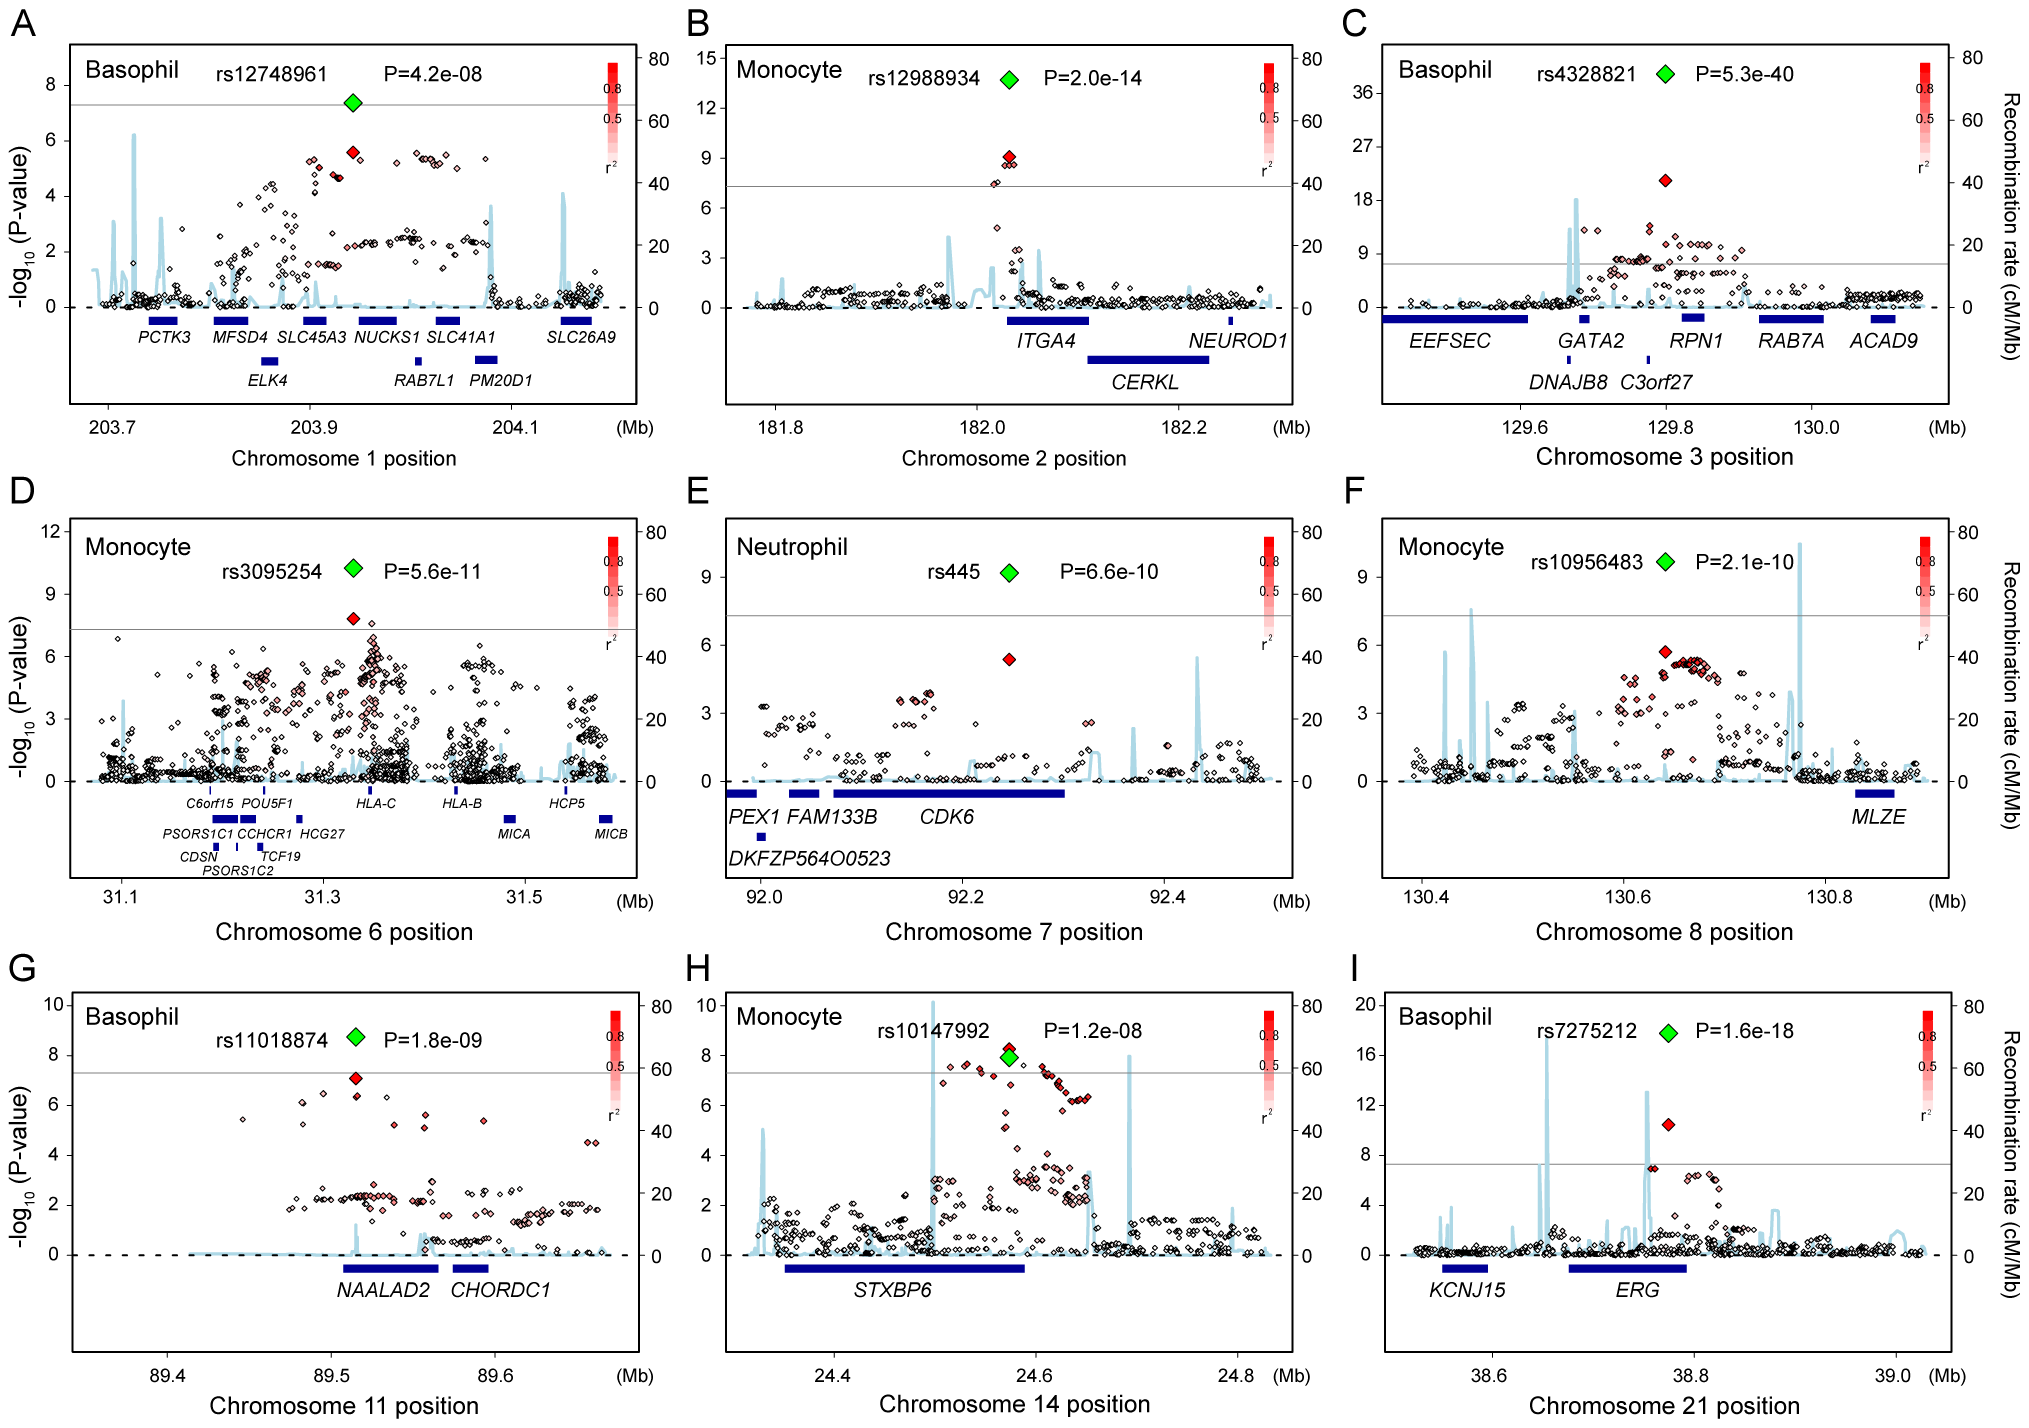 Regional plots of the novel genetic loci associated with the WBC subtypes.